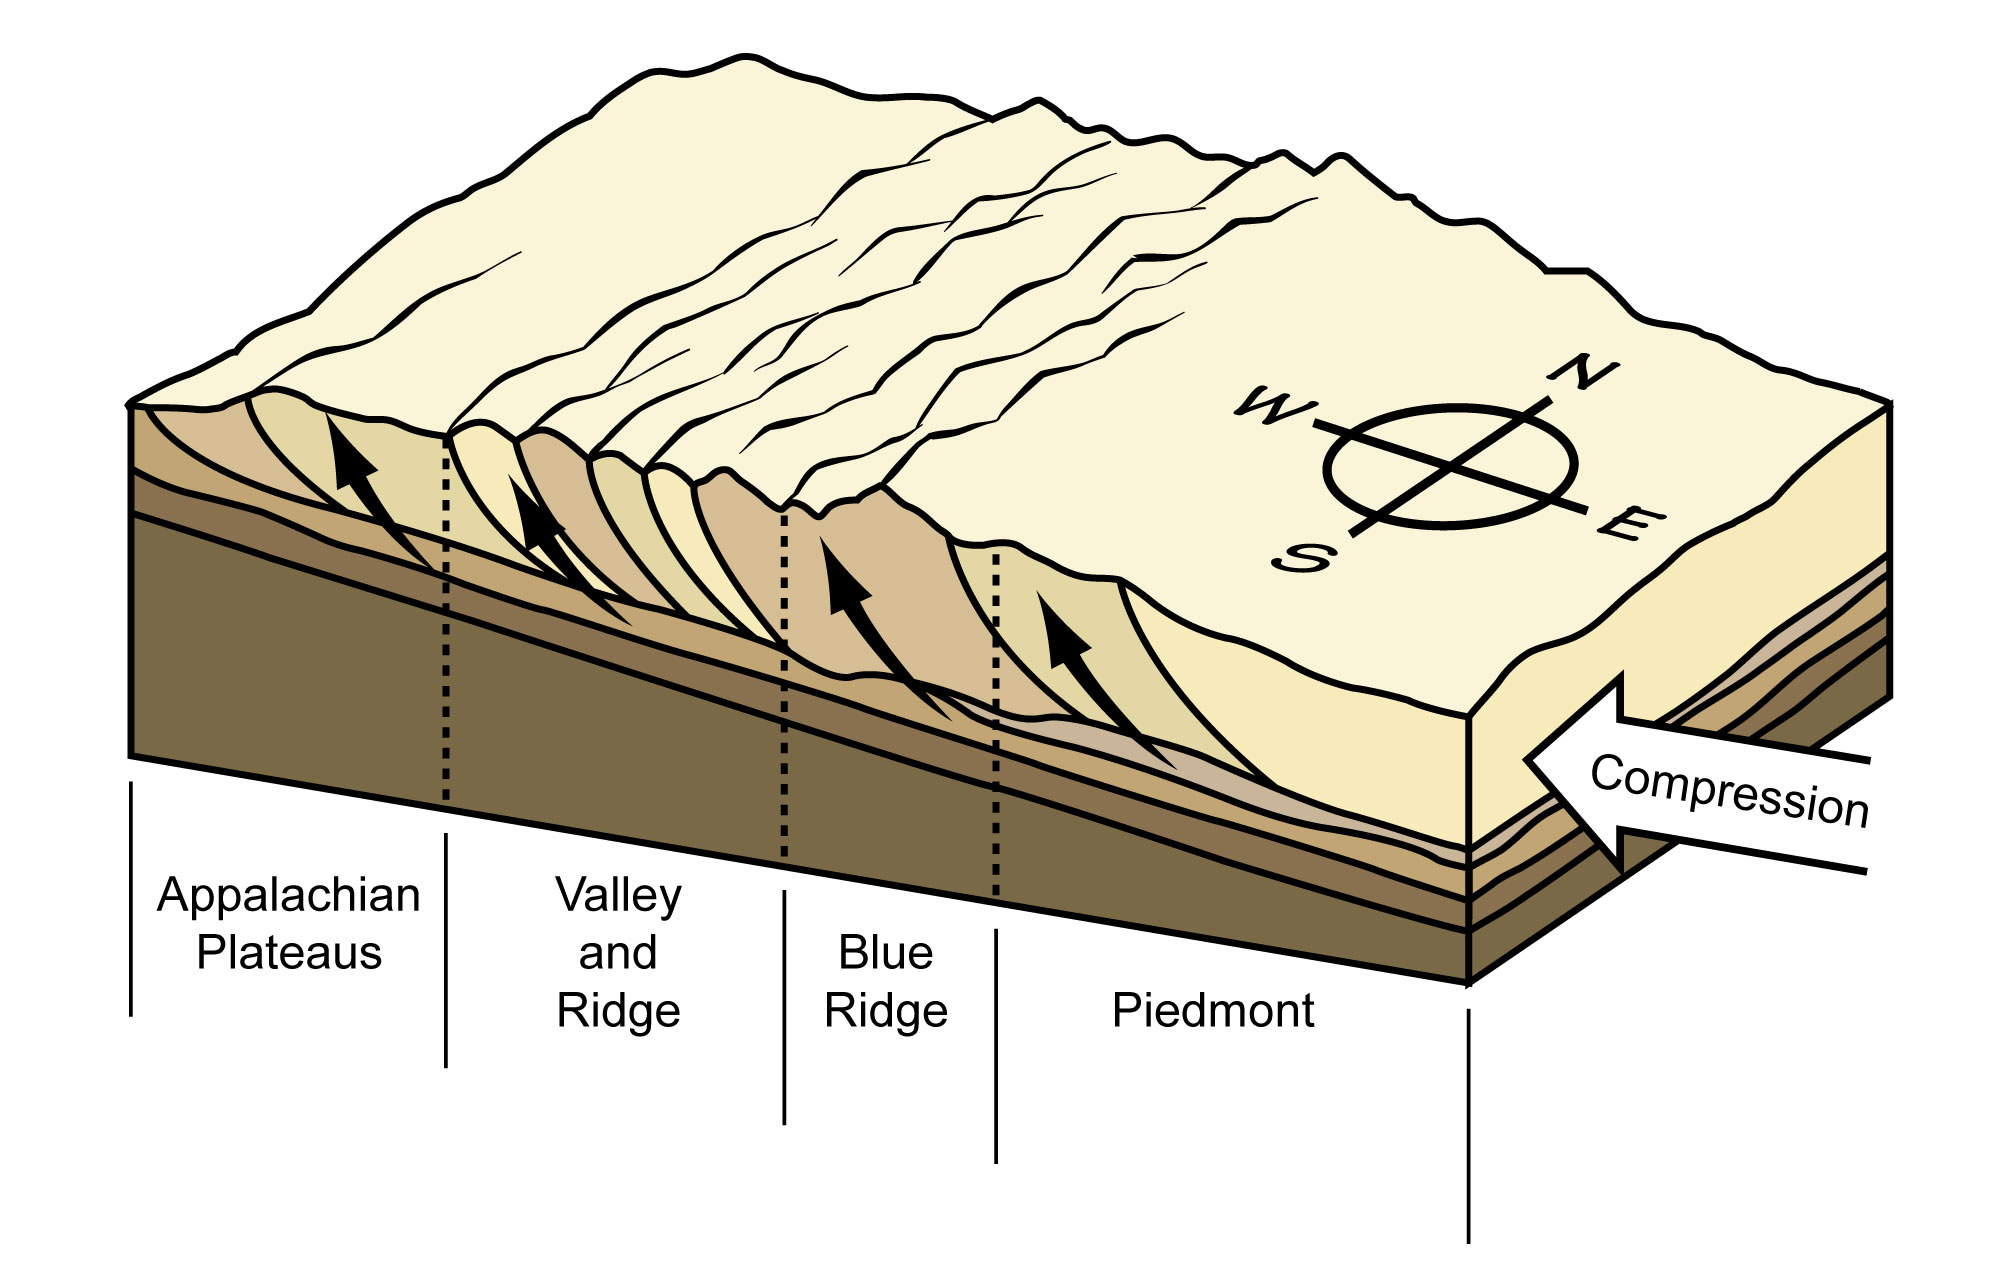 Image depicting how the rust of the Blue Ridge and Piedmont regions were telescoped by compressional forces.